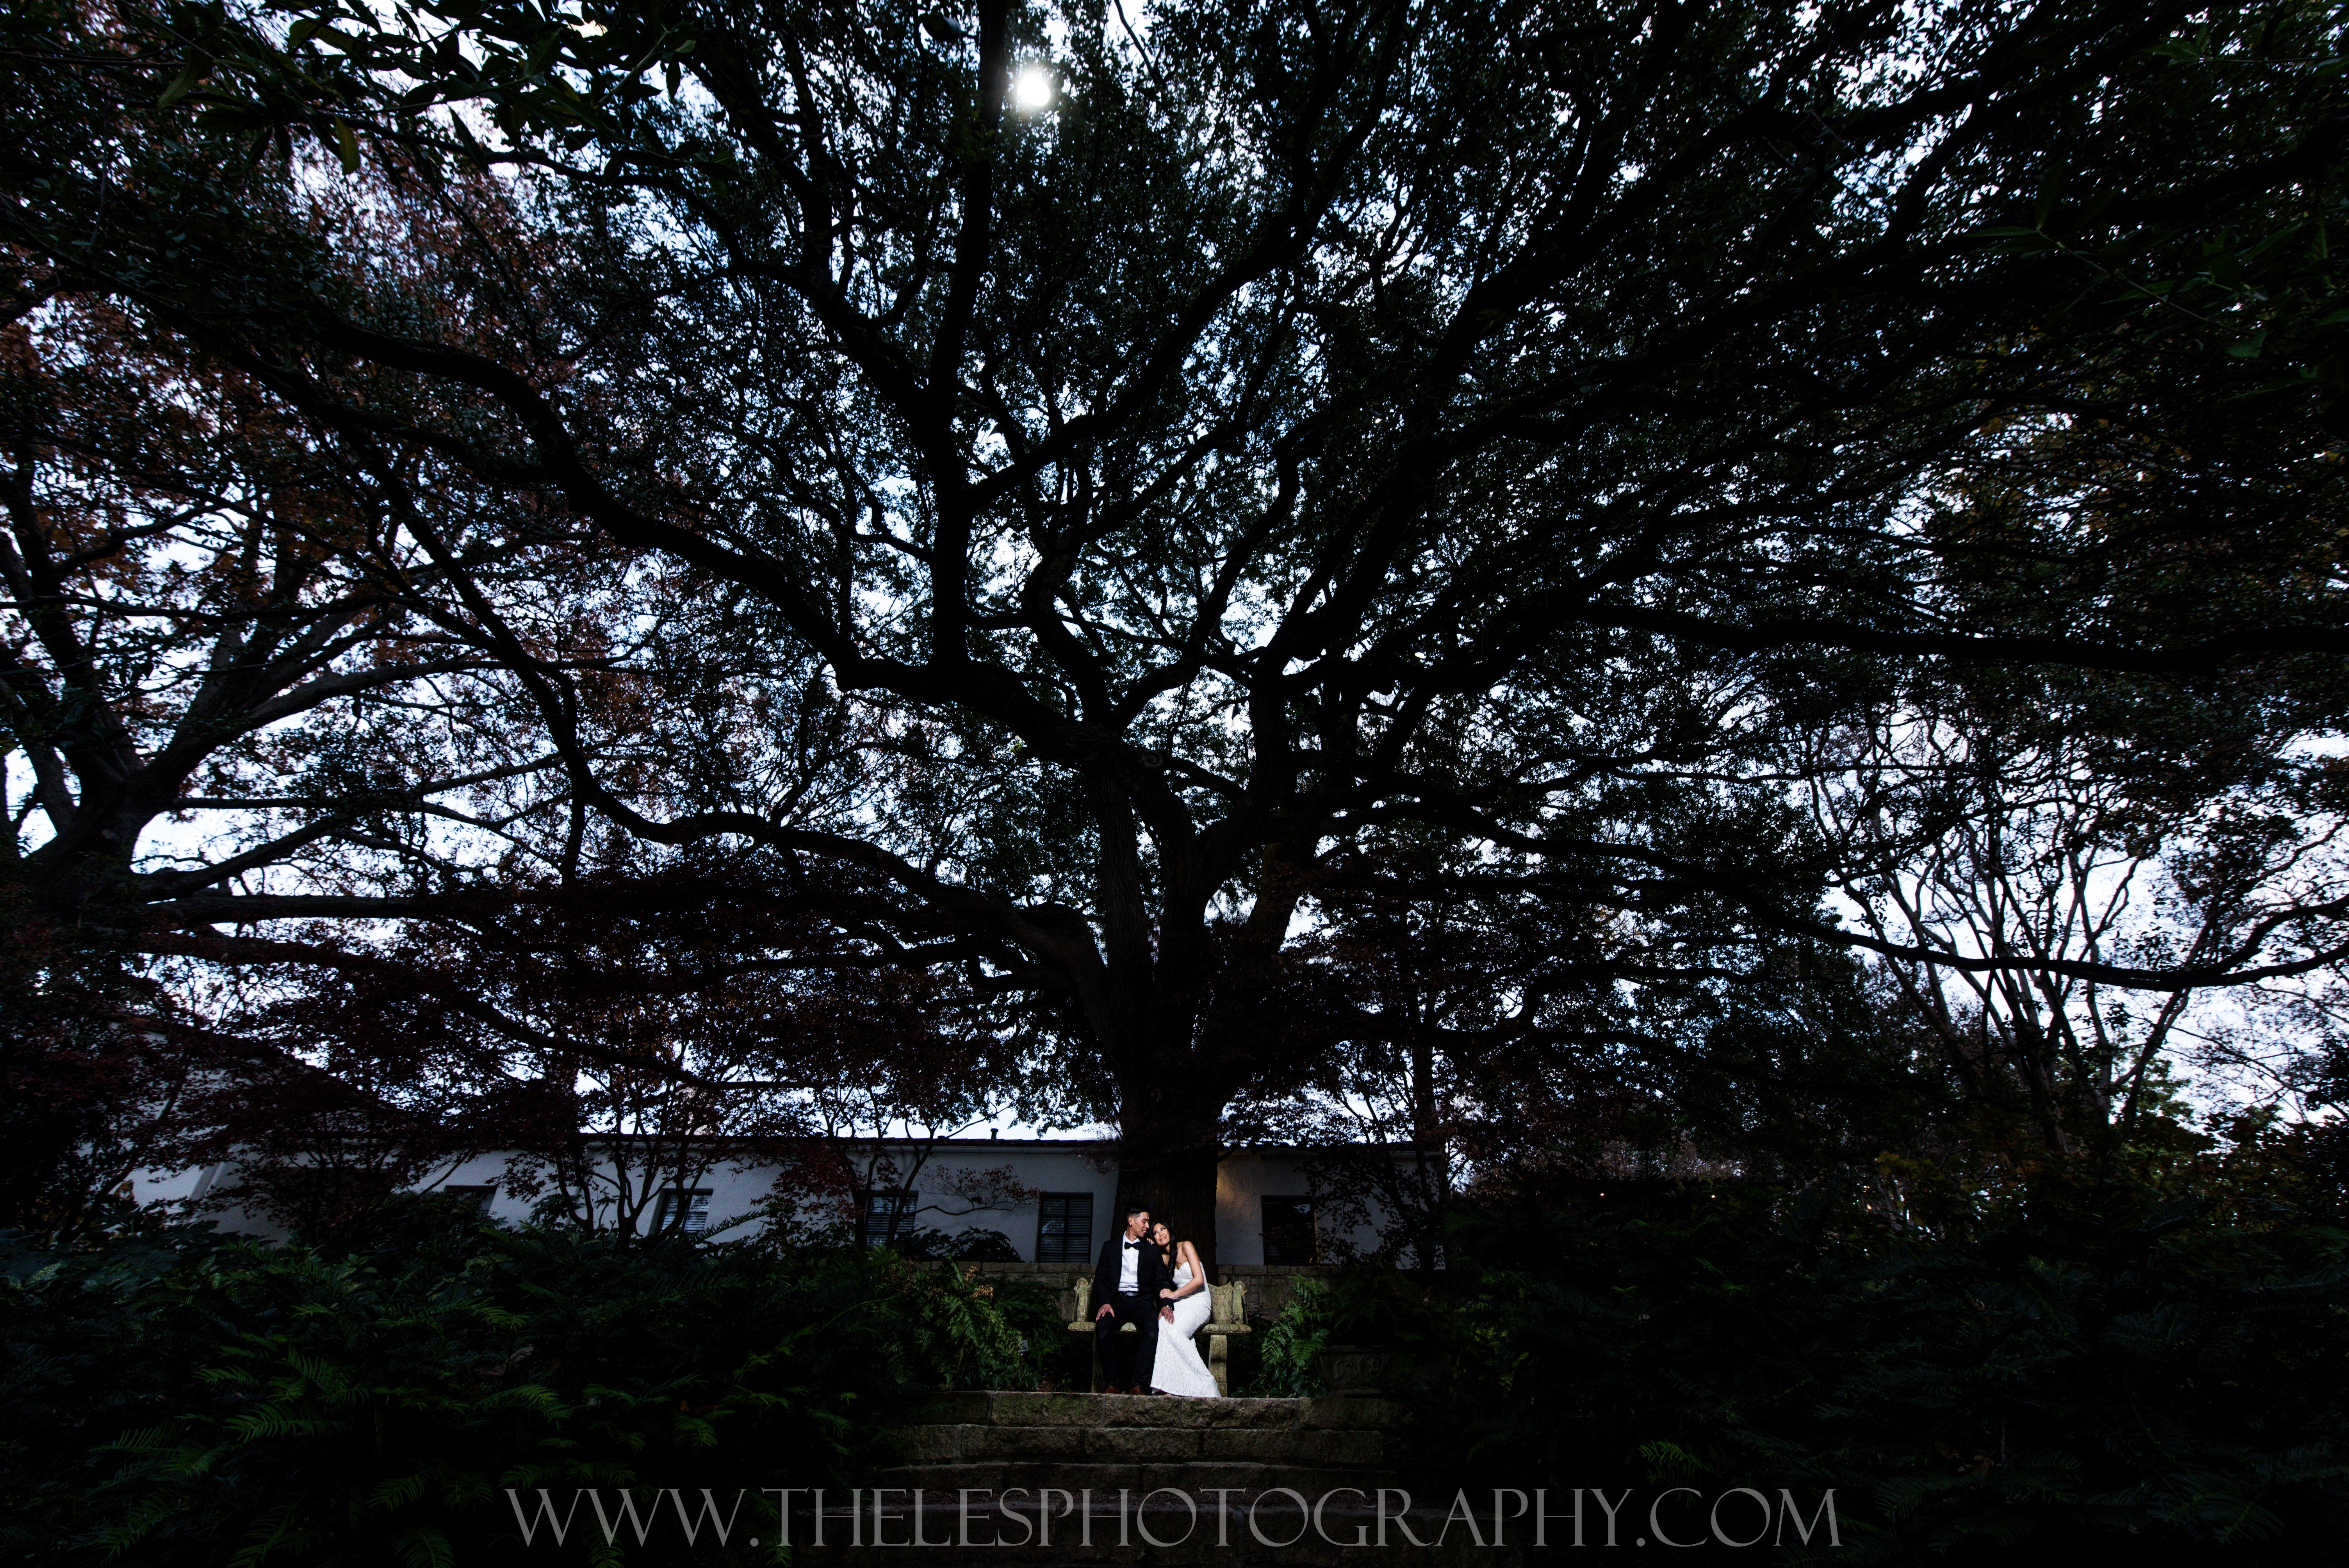 Thu and Hieu's Engagement Highlight 10